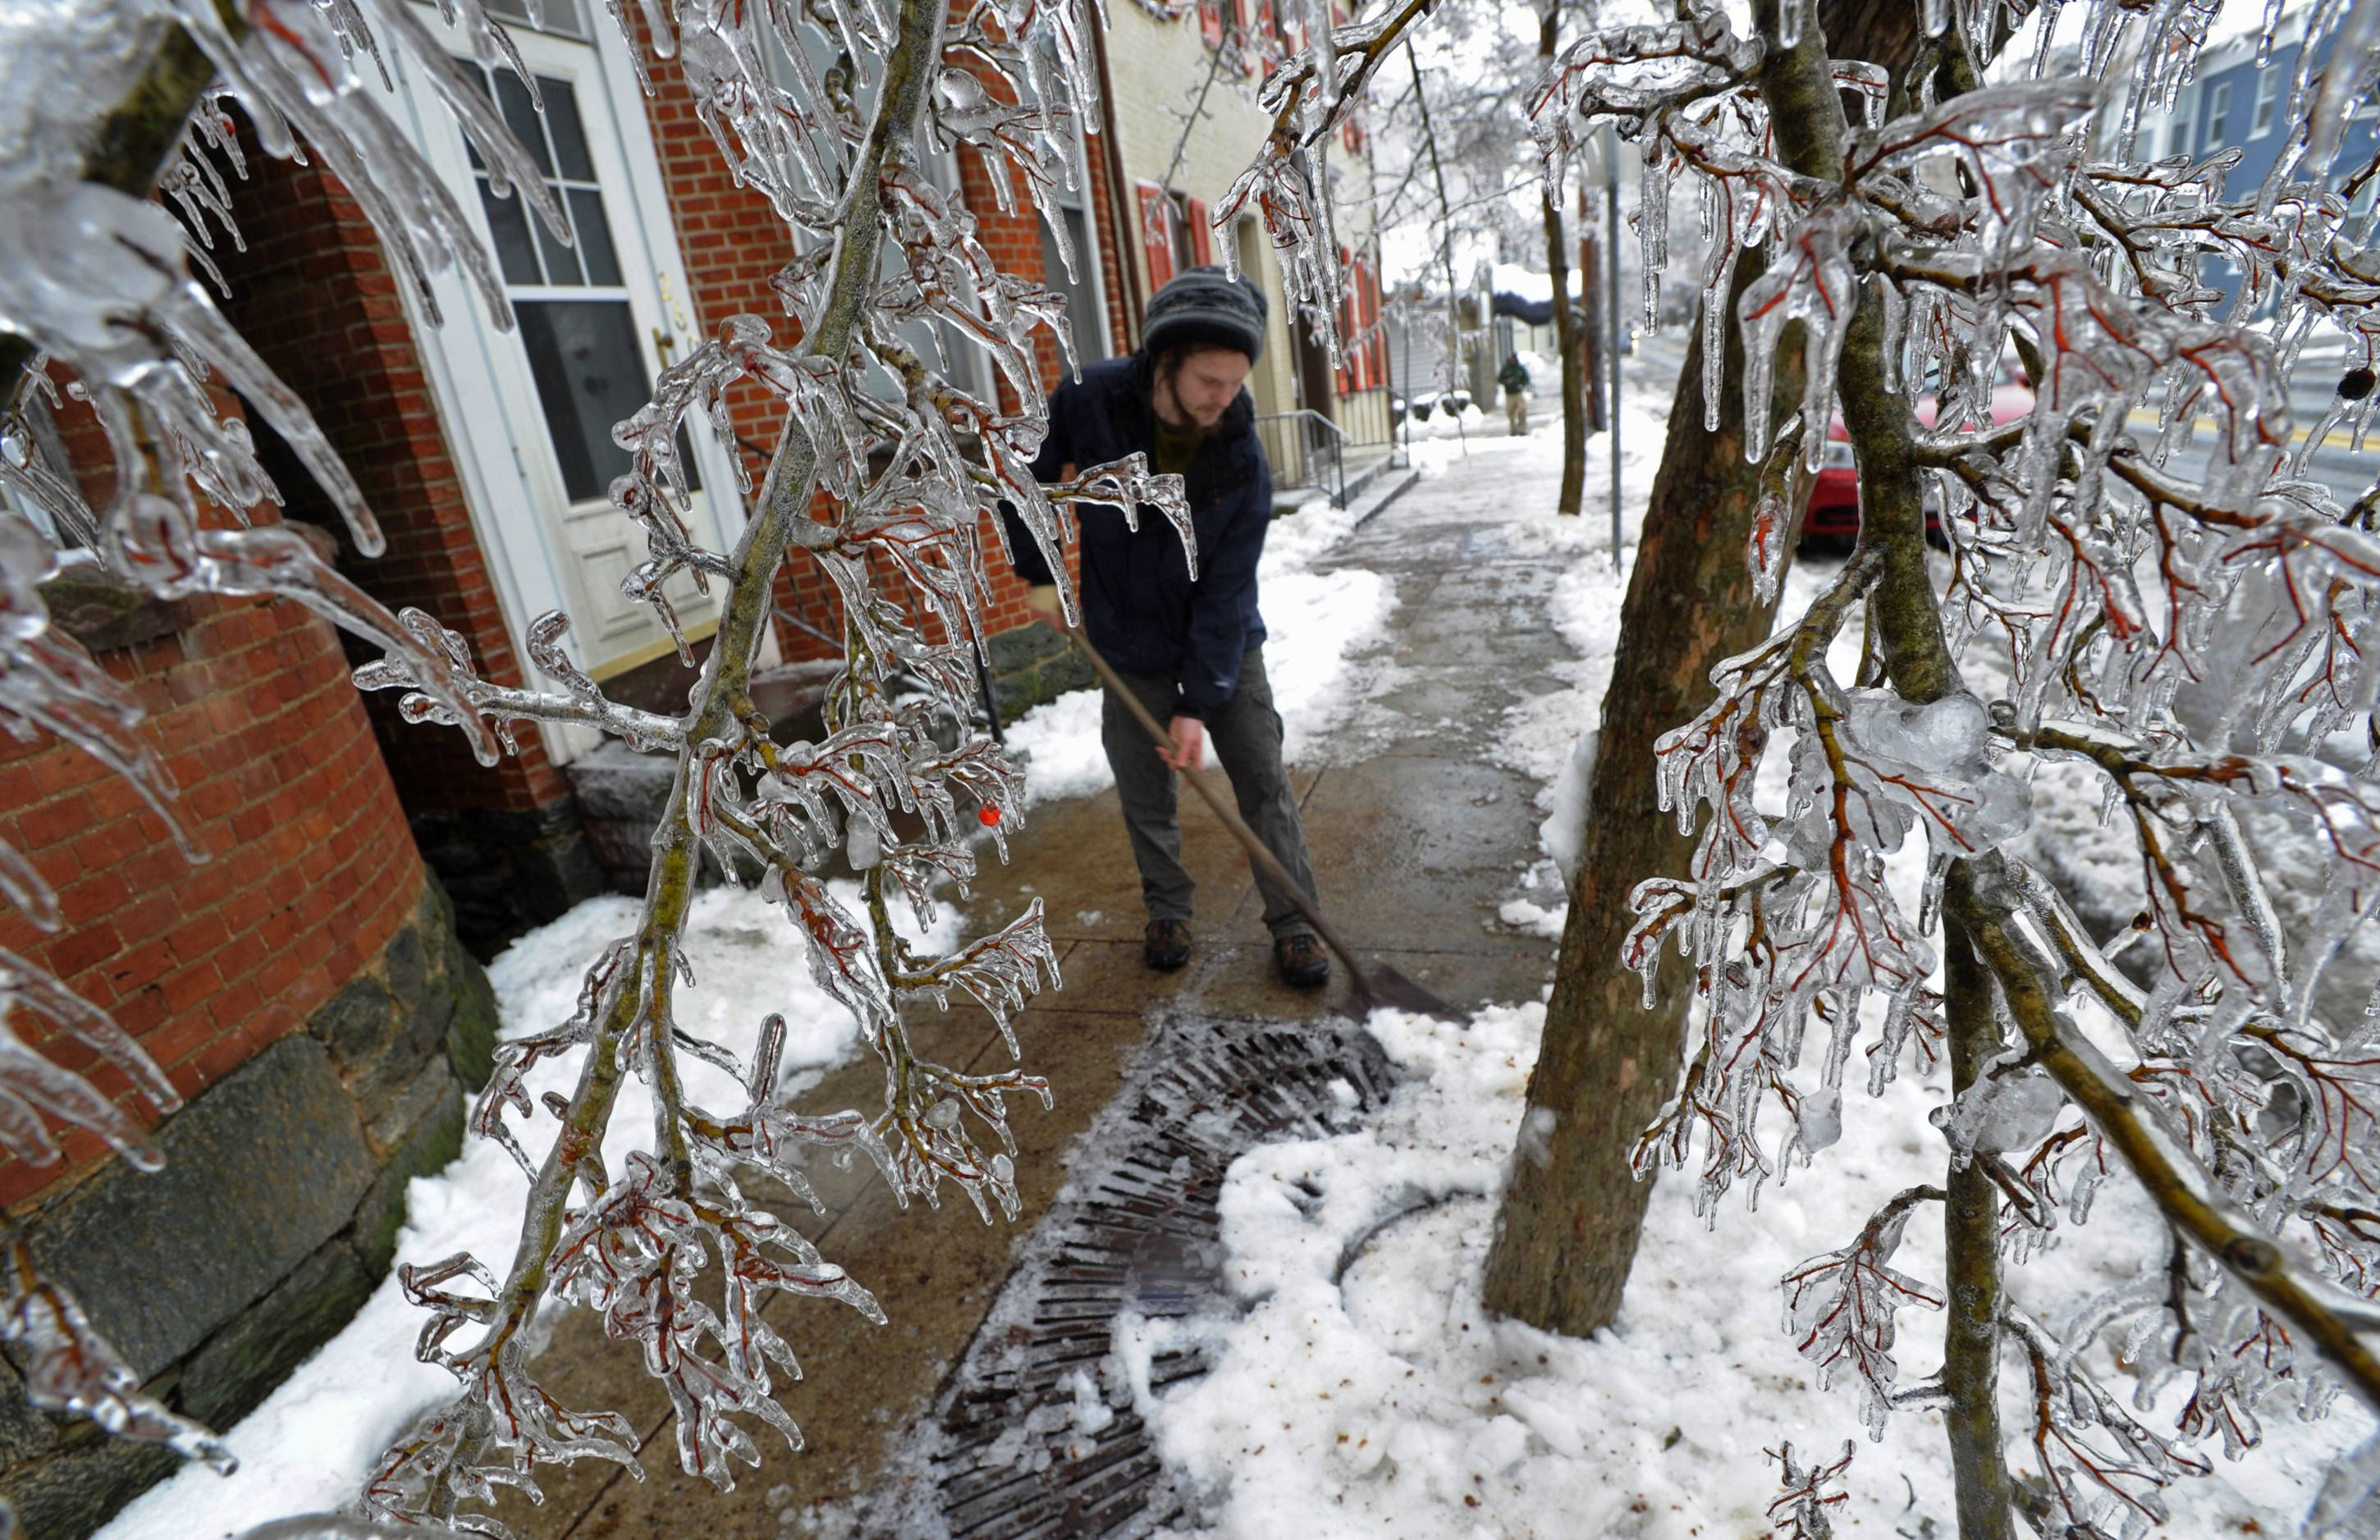 Adam Caprarola clears ice from a sidewalk along East Main Street after a winter storm with freezing rain downed trees and left thousands without electricity, Wednesday, Feb 5, 2014, in Westminster, Md.